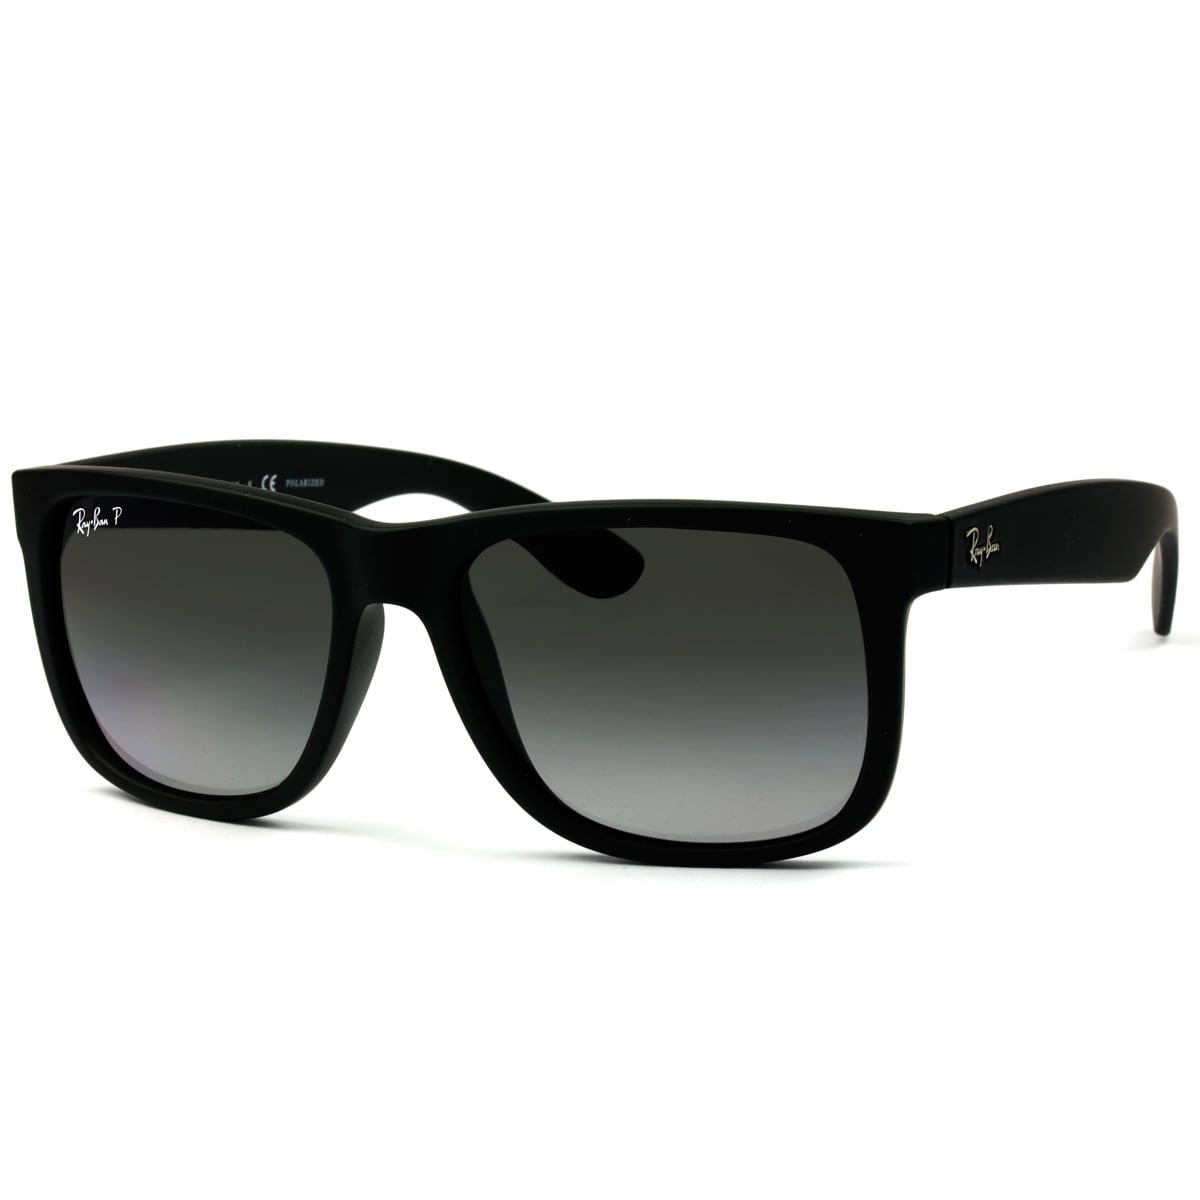 529d21e820f897 Ray-Ban RB4165 622 T3 Justin Classic Black Frame Polarized Grey Gradient  55mm Lens Sunglasses